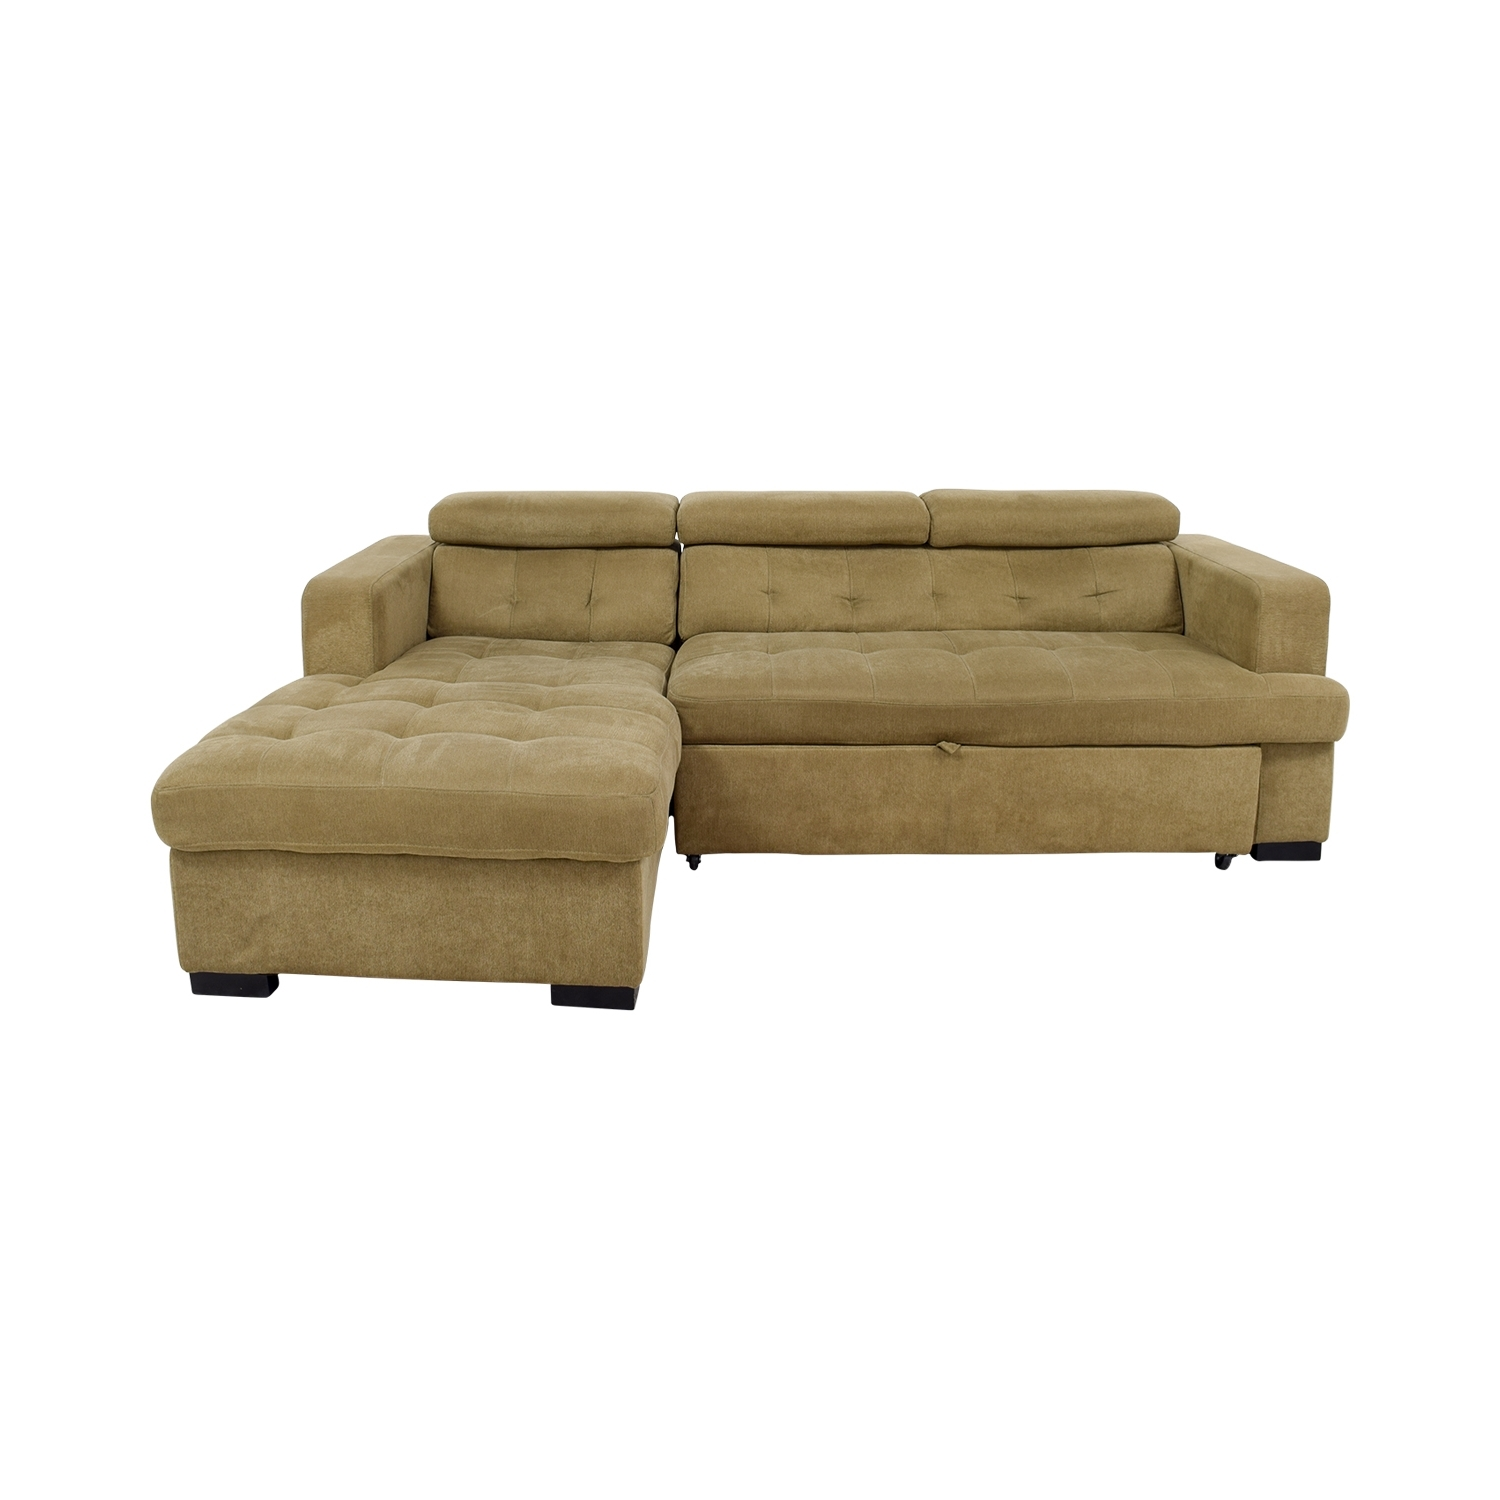 [%59% Off – Bob's Furniture Bob's Furniture Gold Chaise Sectional Intended For Well Liked Sleeper Chaise Sofas|Sleeper Chaise Sofas For Widely Used 59% Off – Bob's Furniture Bob's Furniture Gold Chaise Sectional|Most Recent Sleeper Chaise Sofas Inside 59% Off – Bob's Furniture Bob's Furniture Gold Chaise Sectional|Well Liked 59% Off – Bob's Furniture Bob's Furniture Gold Chaise Sectional Within Sleeper Chaise Sofas%] (View 15 of 15)